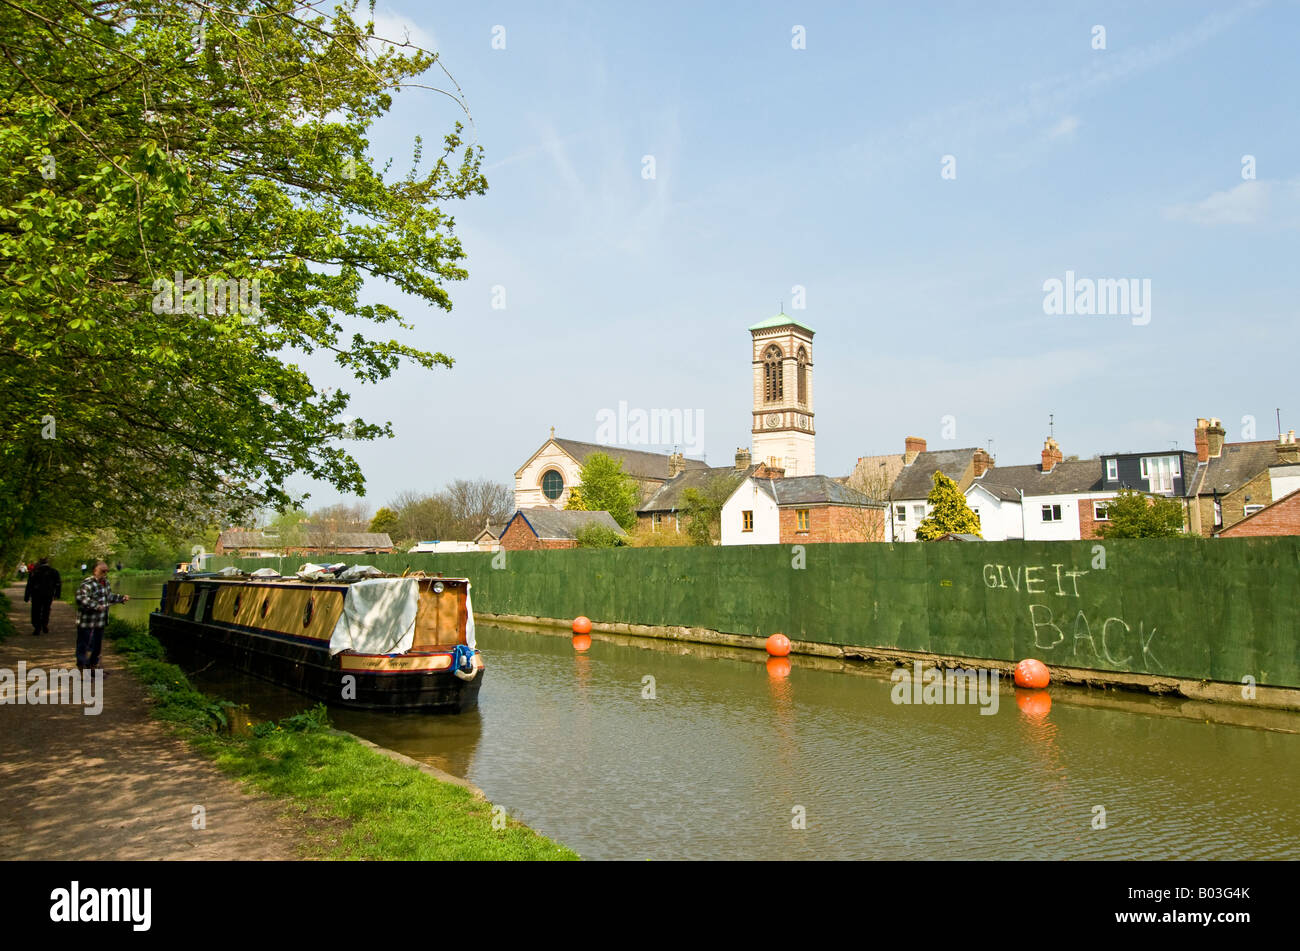 Site of the closed boatyard on the Oxford Canal in Jericho, Oxford, England - Stock Image